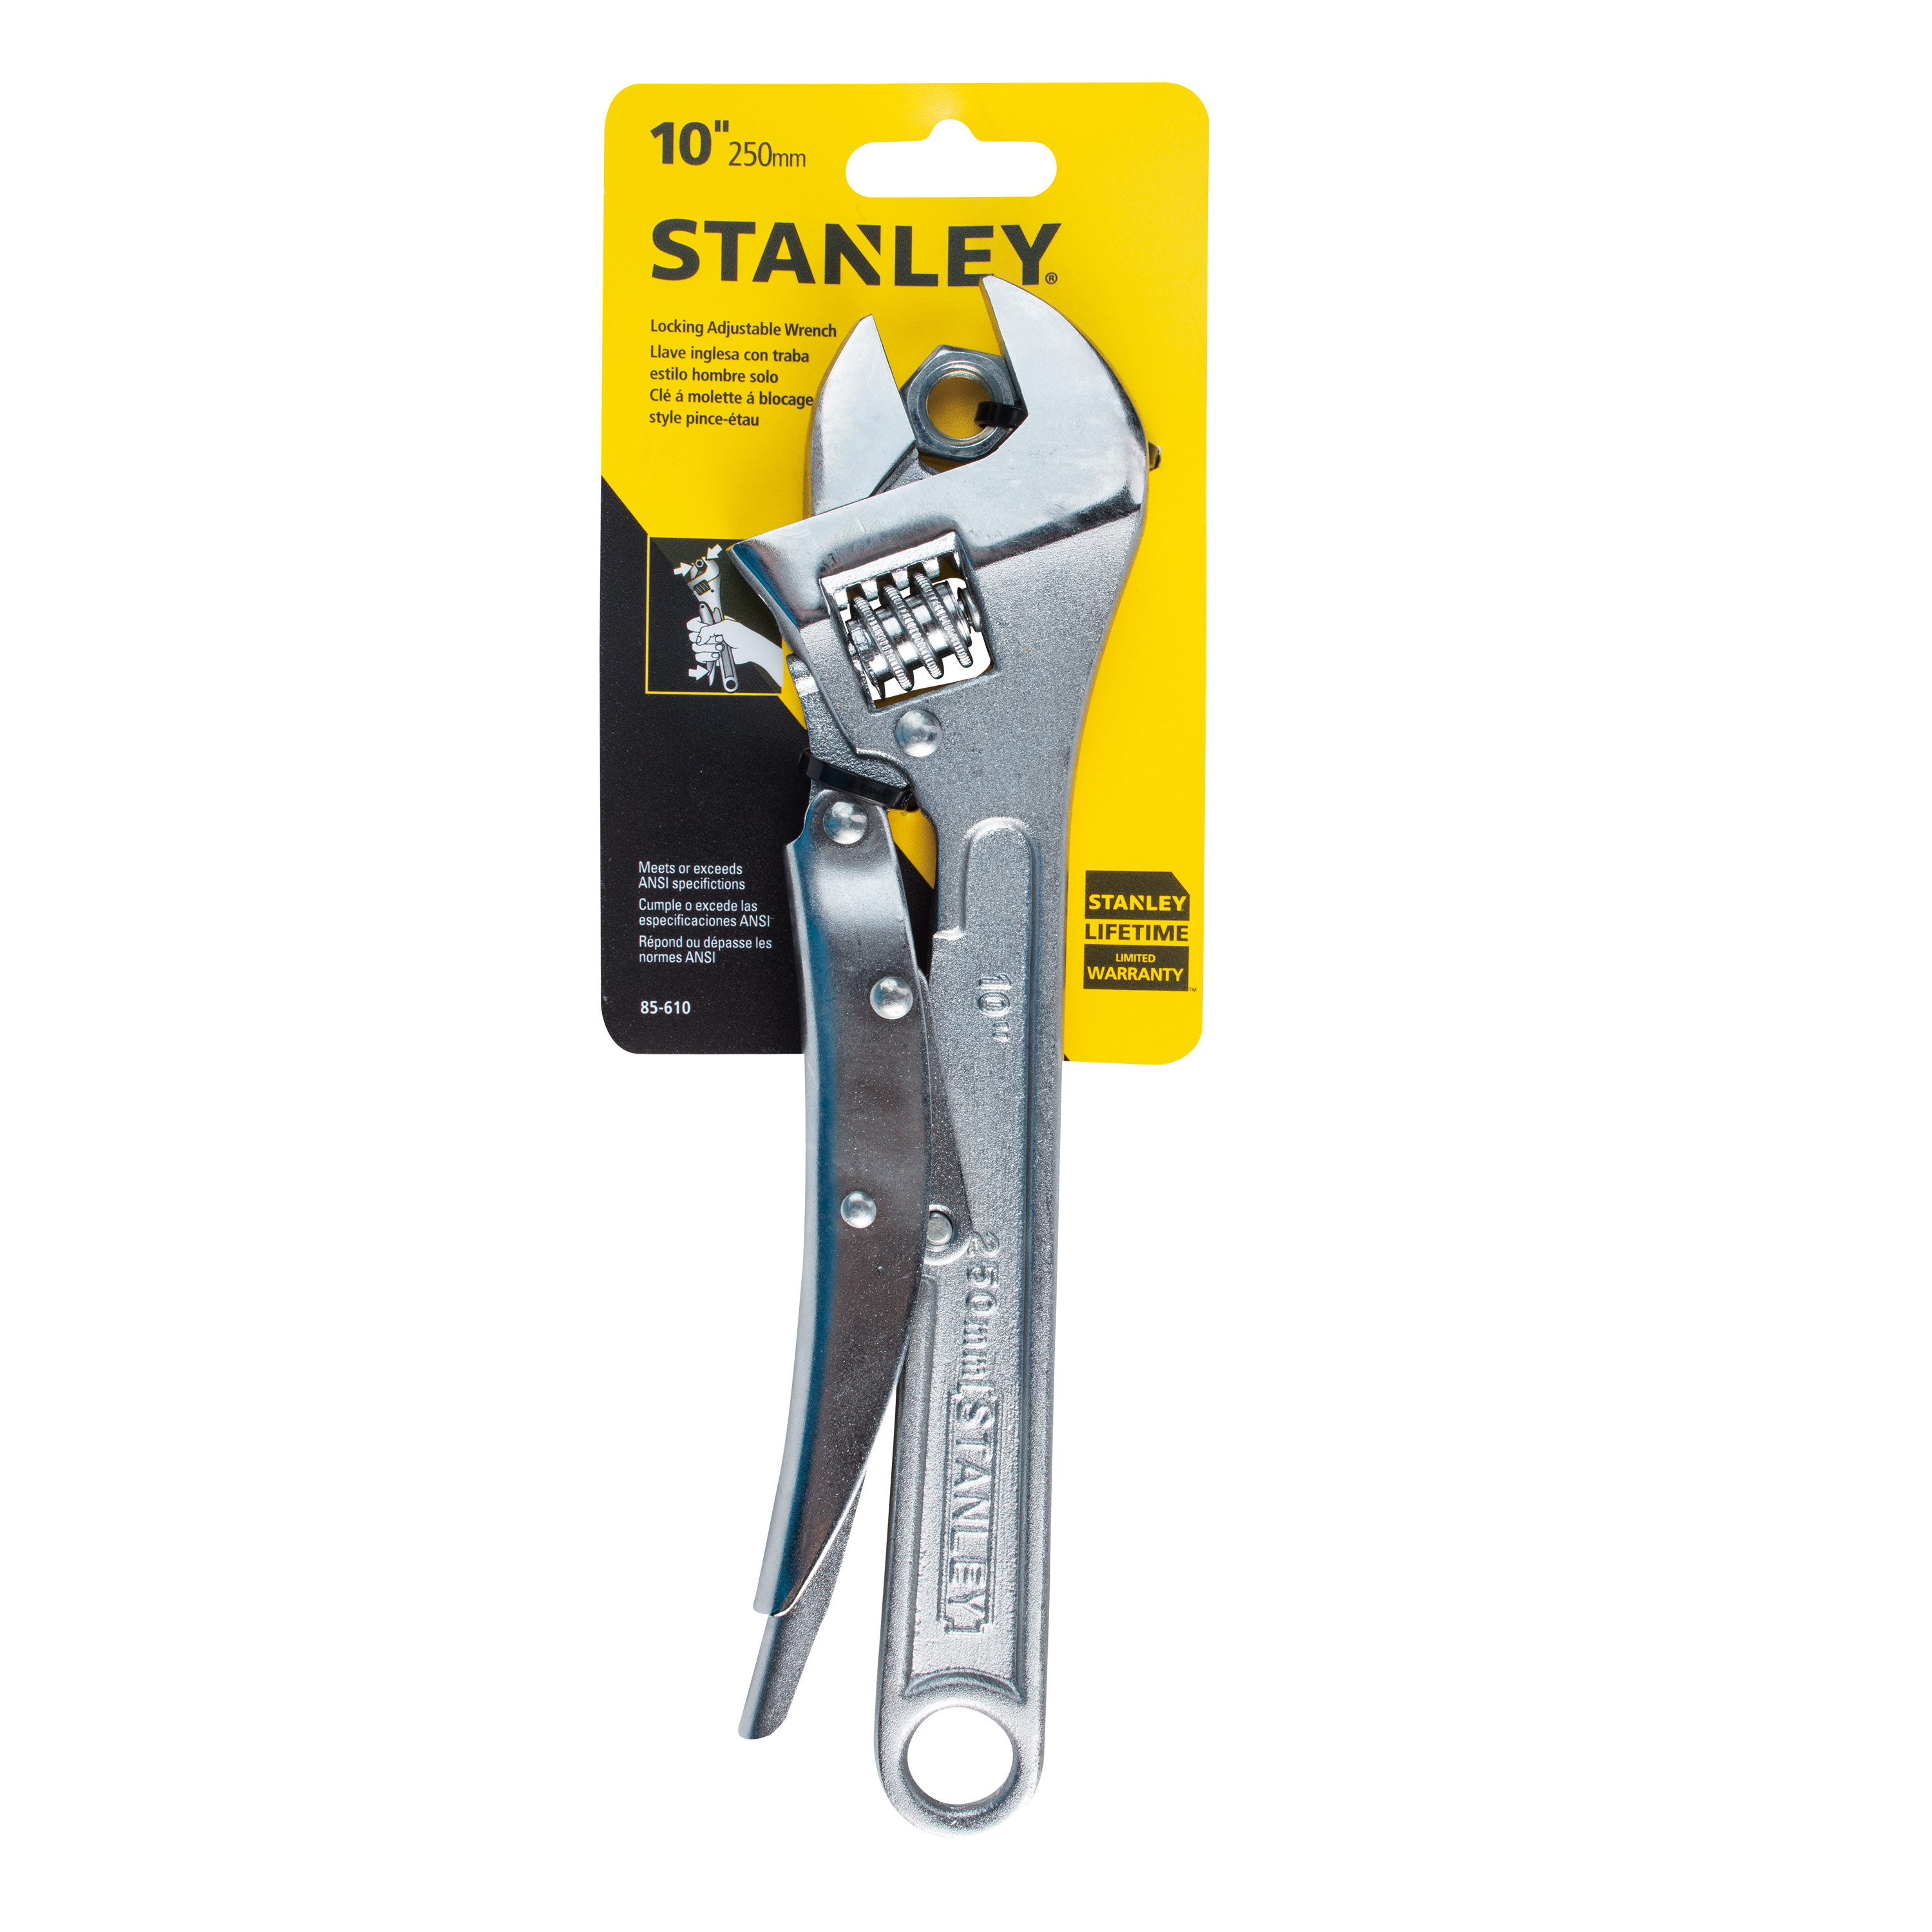 STANLEY 85-610W - 10'' Locking Adjustable Wrench